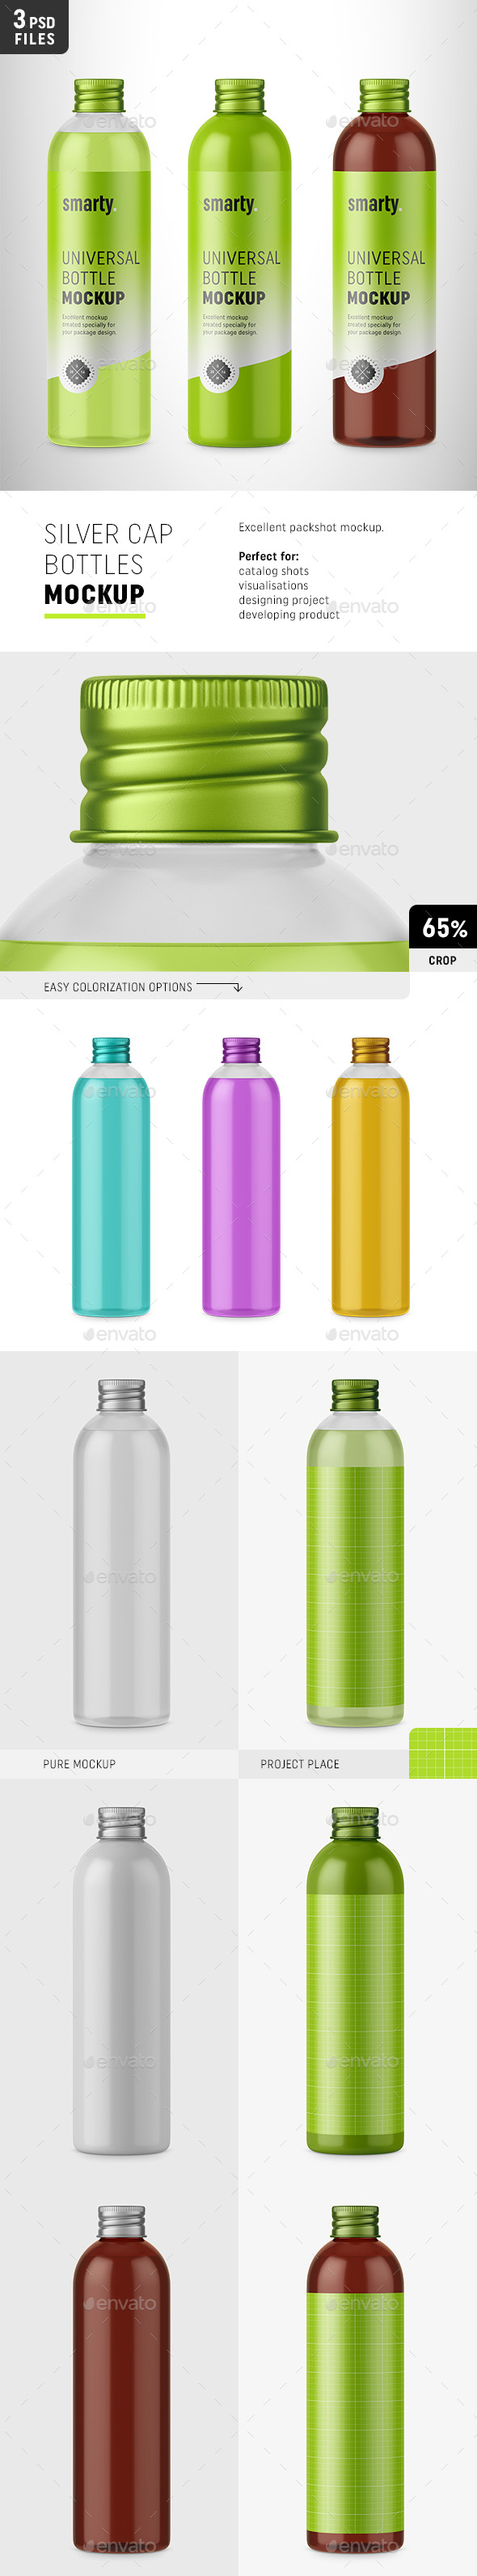 Bottles with Silver Cap Mockup - Packaging Product Mock-Ups